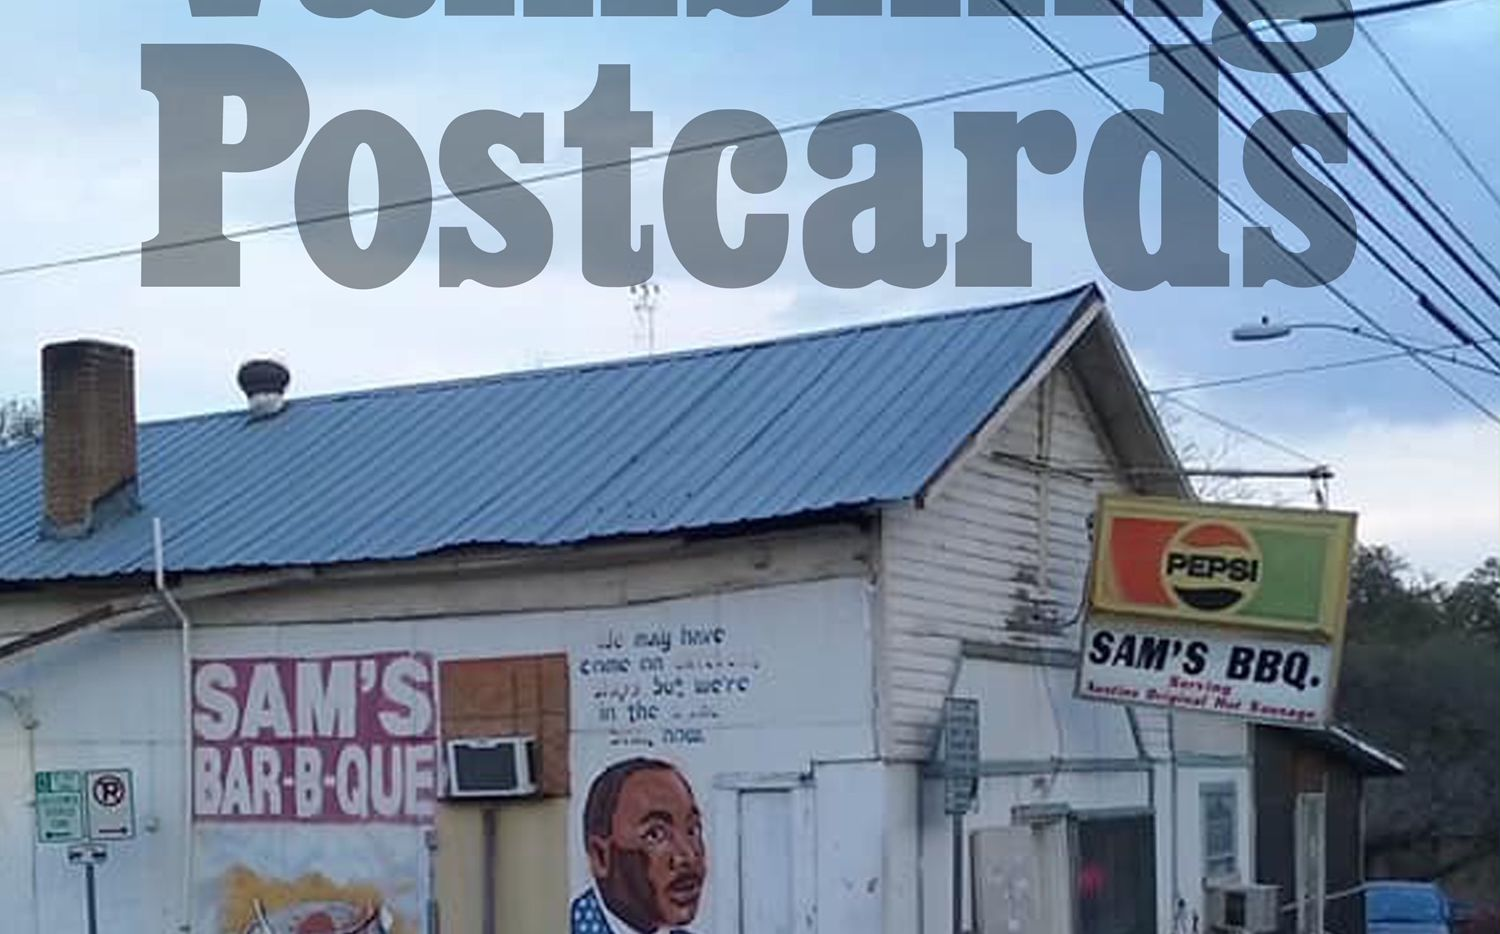 'Vanishing Postcards' is a new travel podcast about Texas from actor Evan Stern.